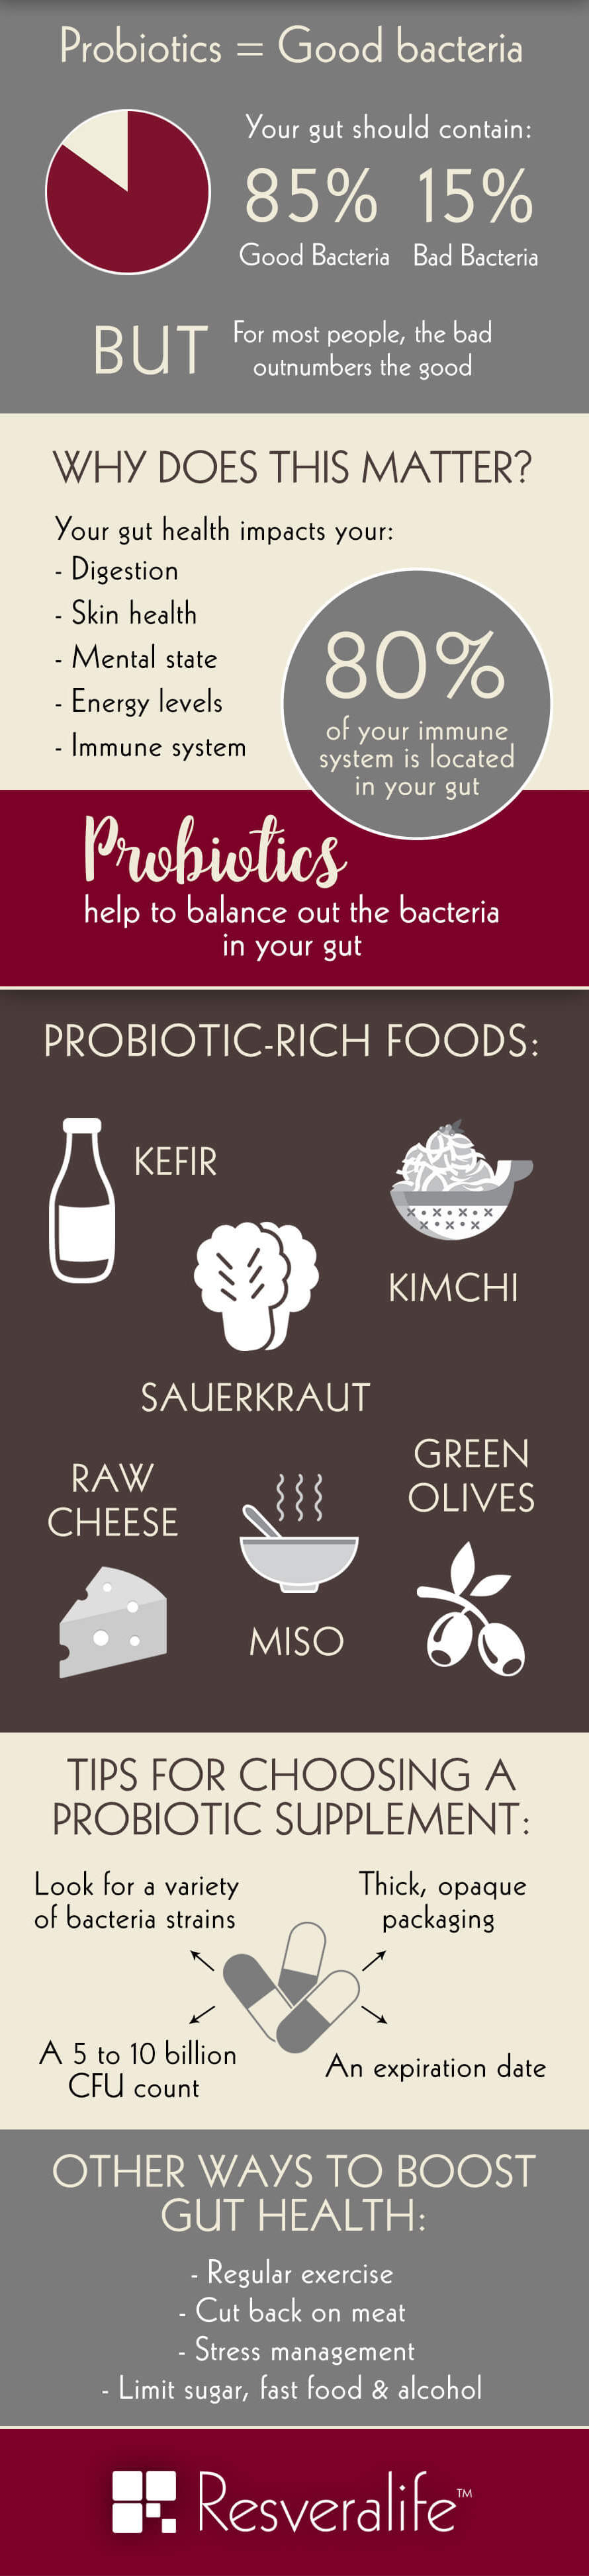 Infographic on probiotics